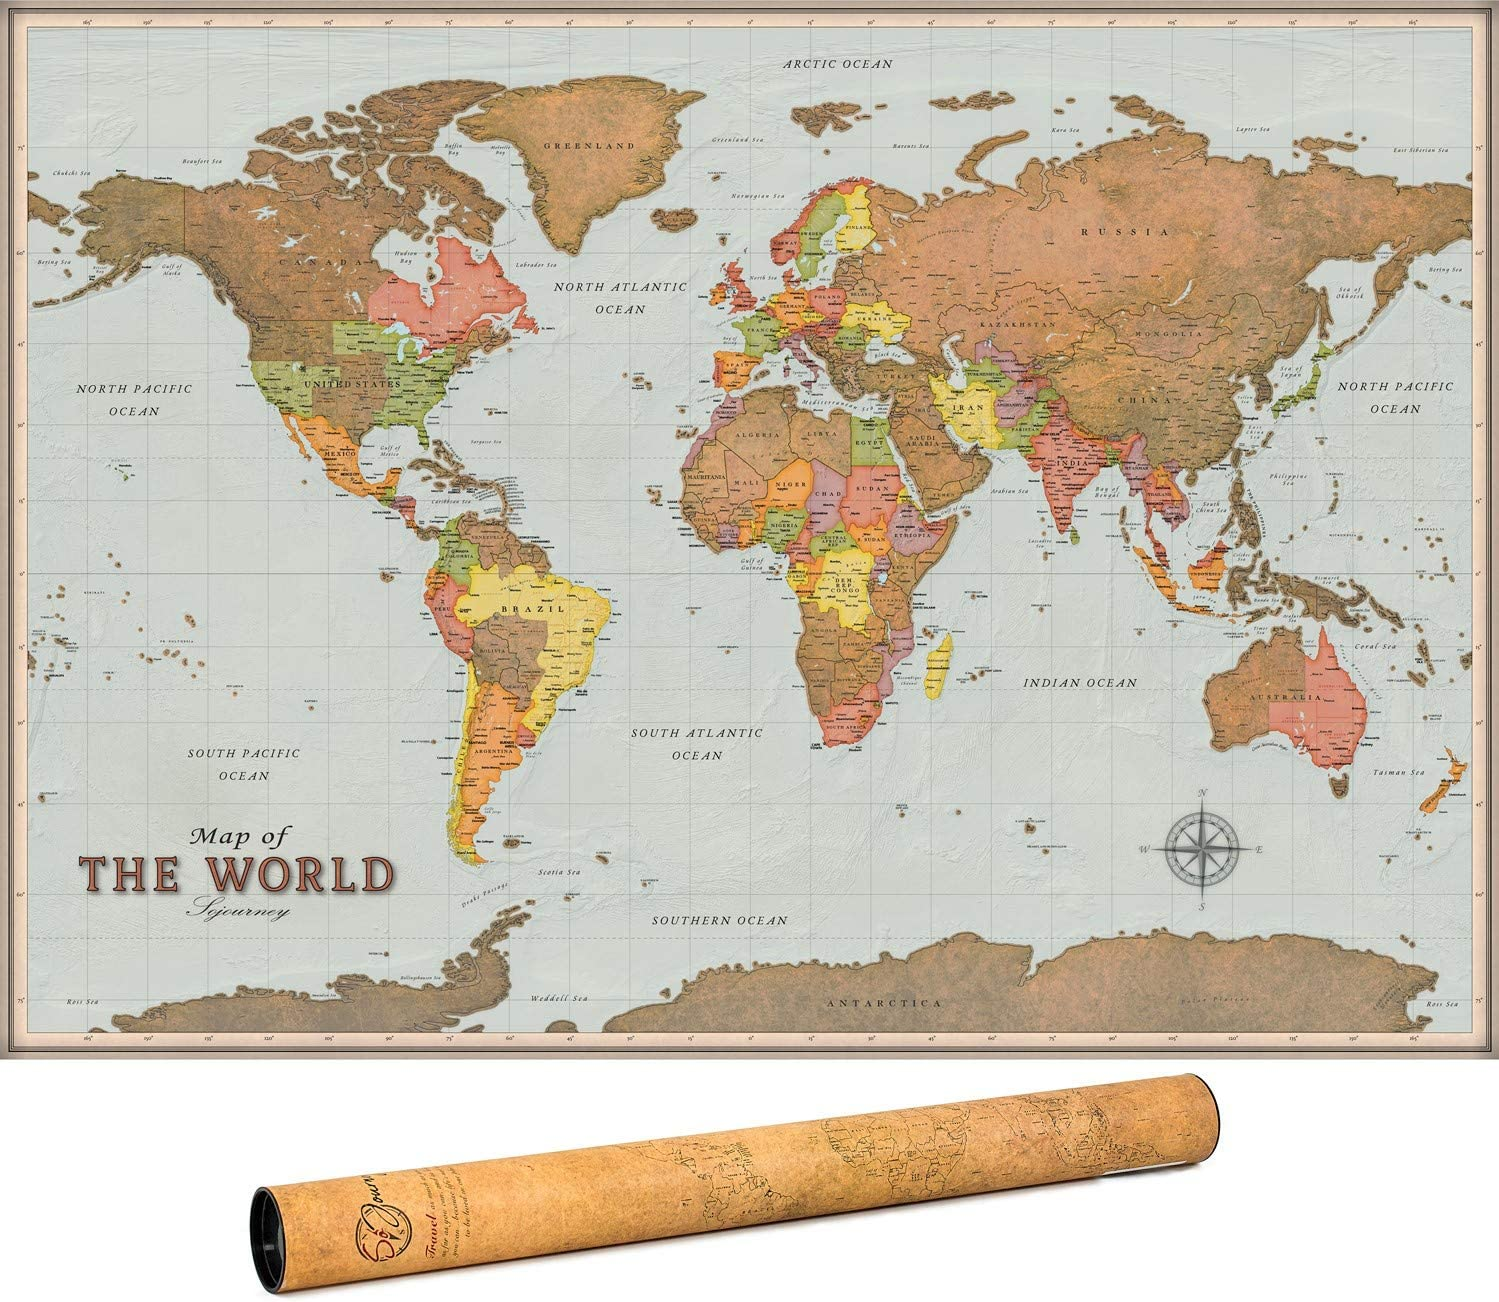 Scratch Off Map of The World - Premium Edition - World Scratch Off Map with Outlined Canadian and US States, XL Large Size 33 x 24, World Map Scratch Off Poster with Highly Detailed Cartography